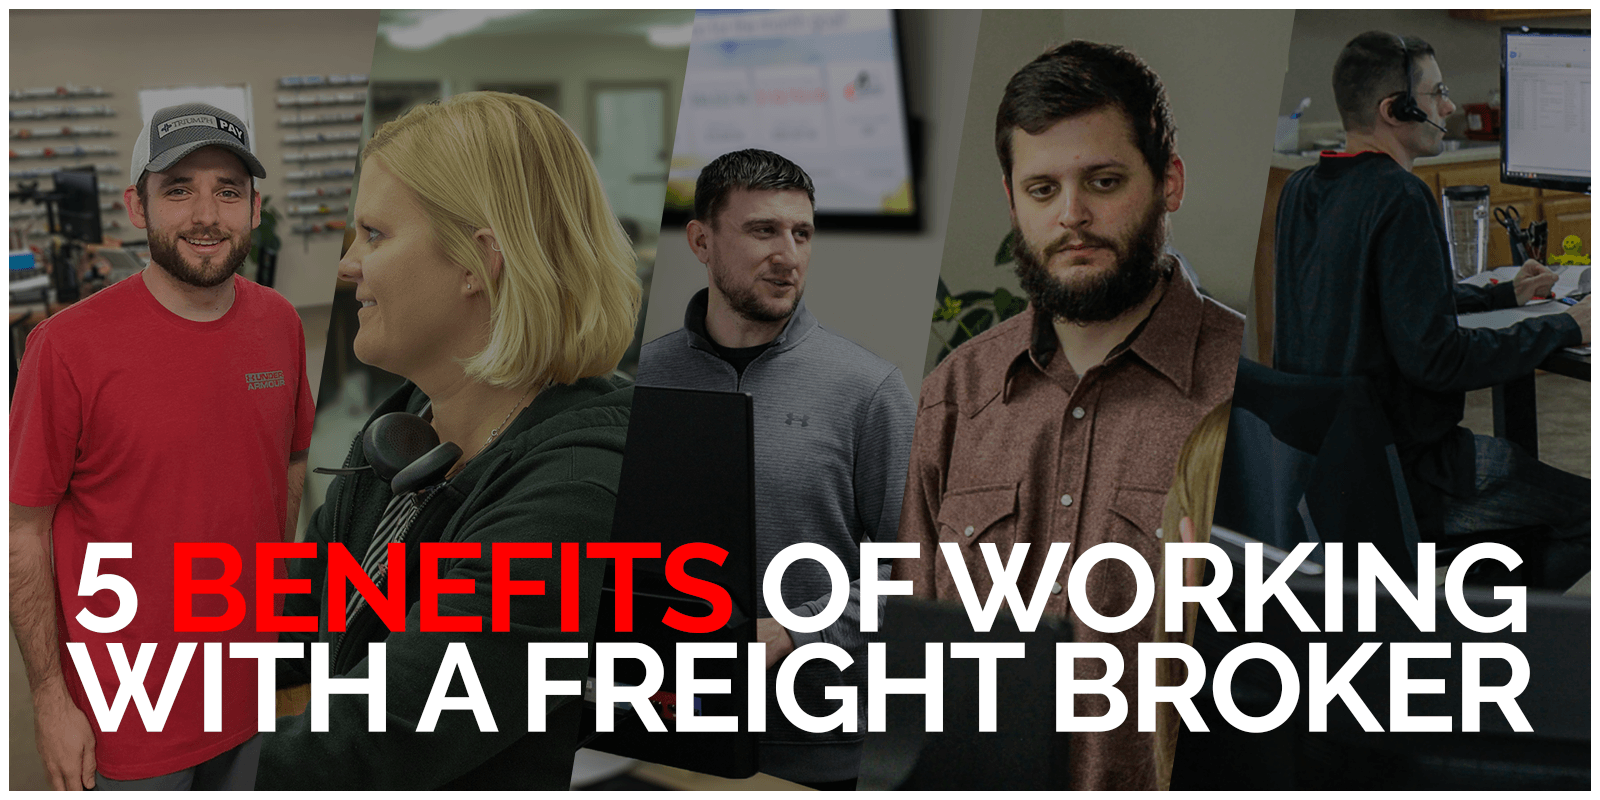 text-5 Benefits of working with a freight broker over picture of five team members